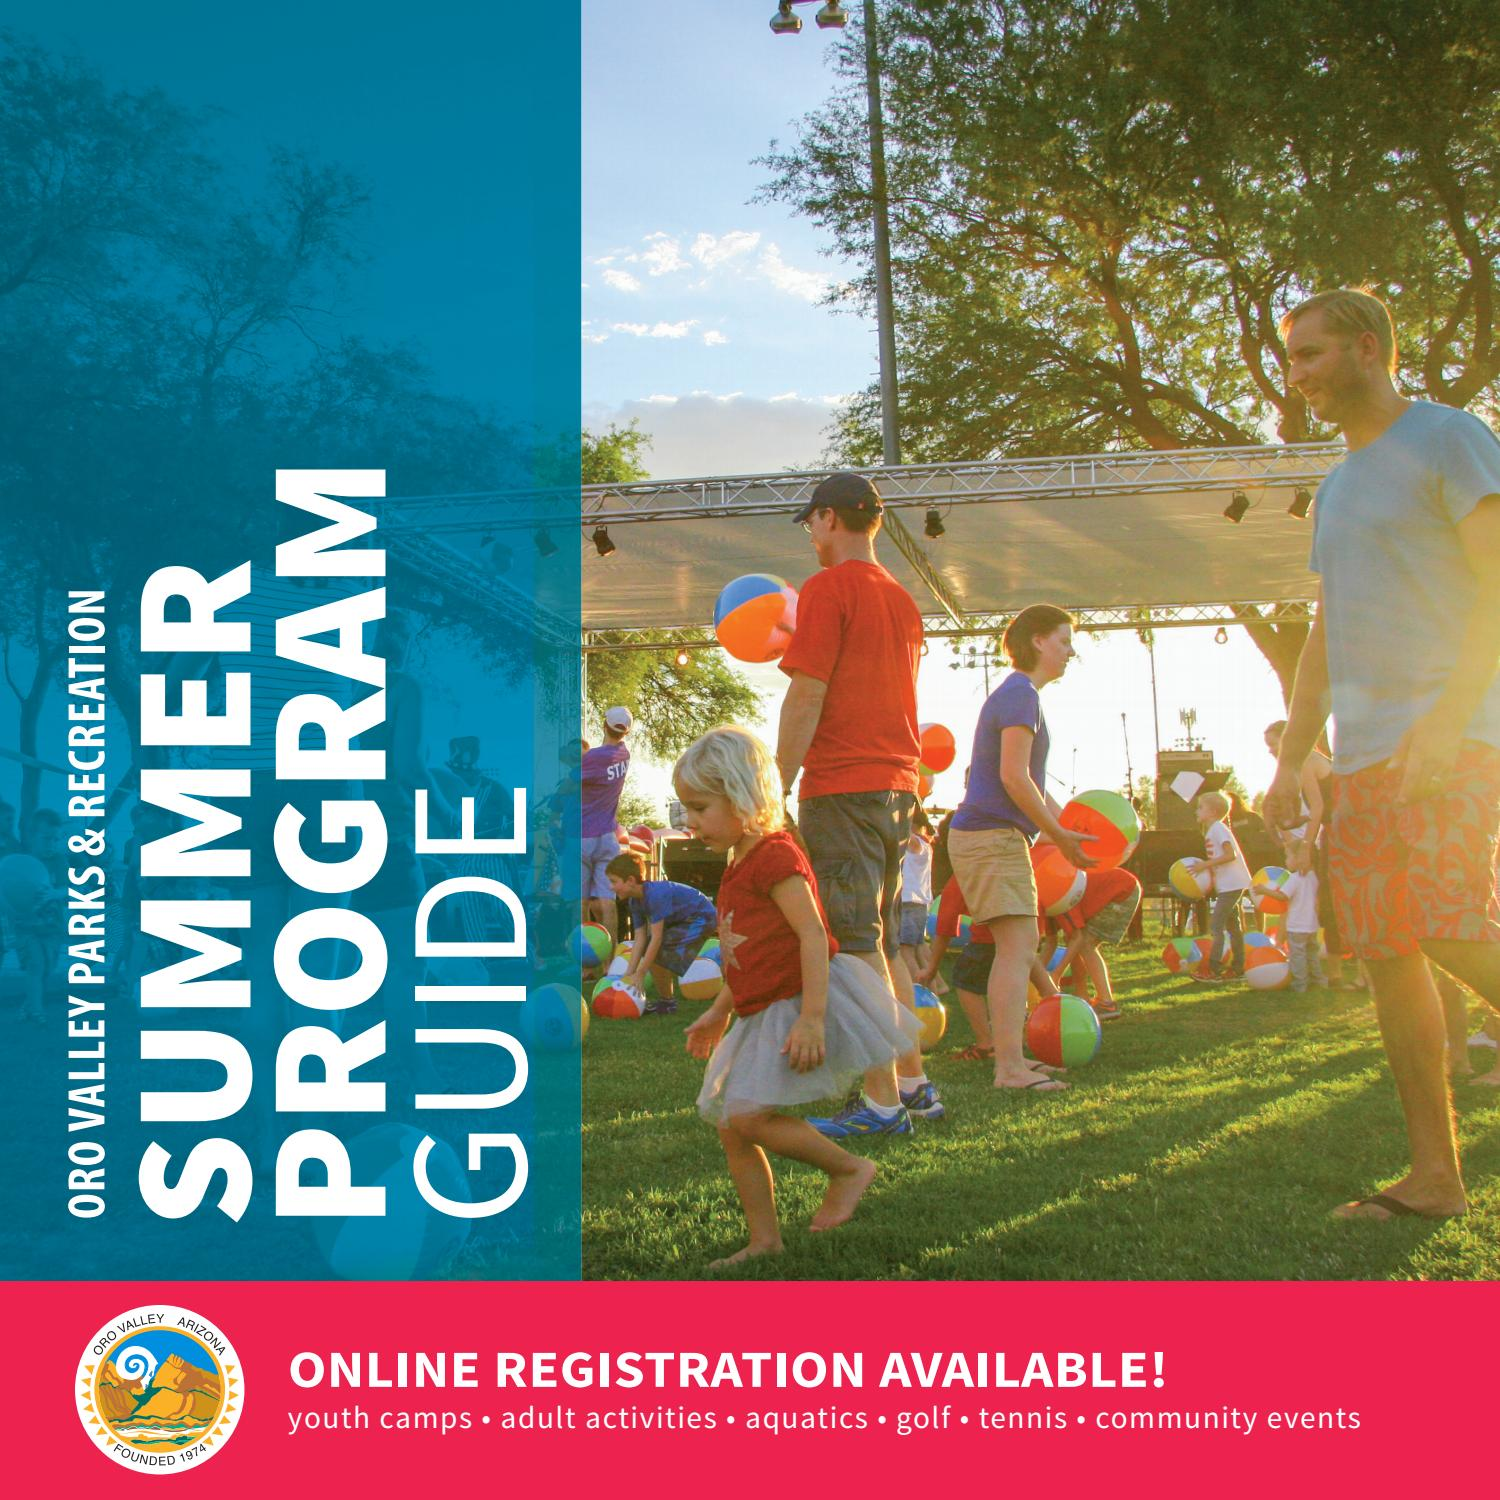 Town Of Oro Valley Parks And Recreation Guide Summer2020 By Oro Valley Issuu Top arizona nature & wildlife areas: issuu